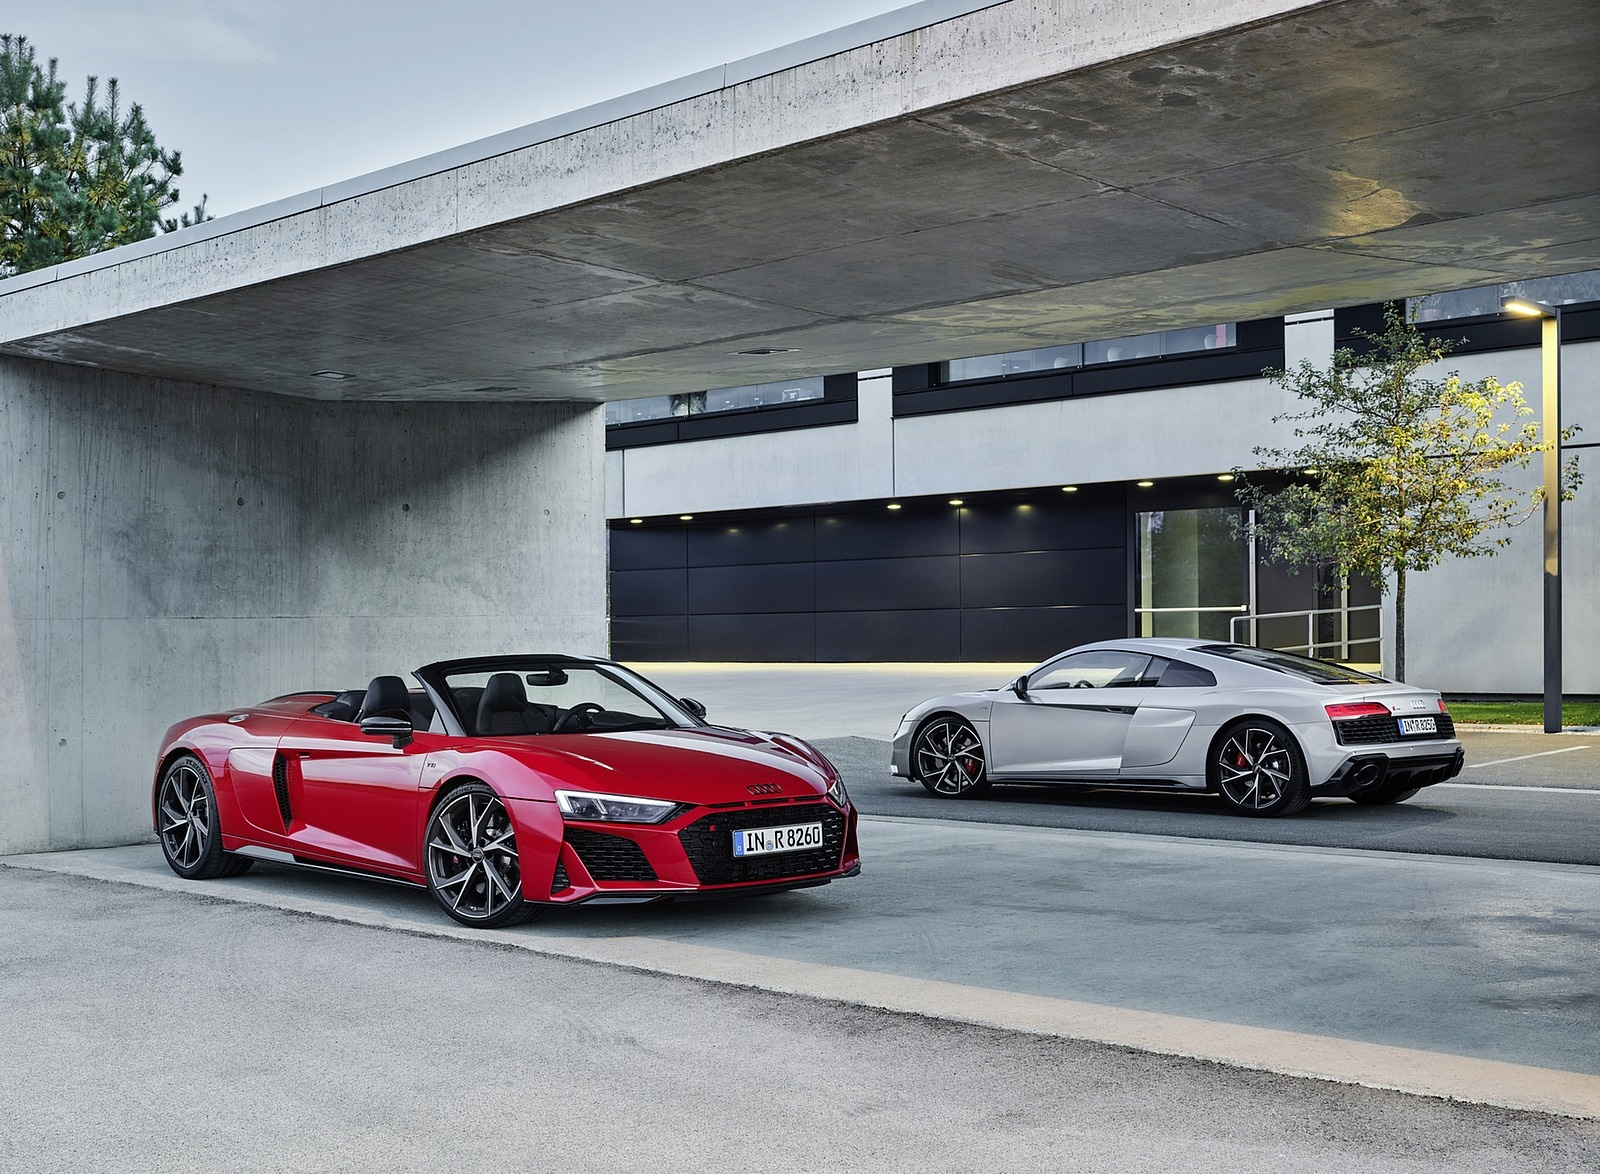 2020 Audi R8 V10 RWD Coupe and Spyder Wallpapers (10)